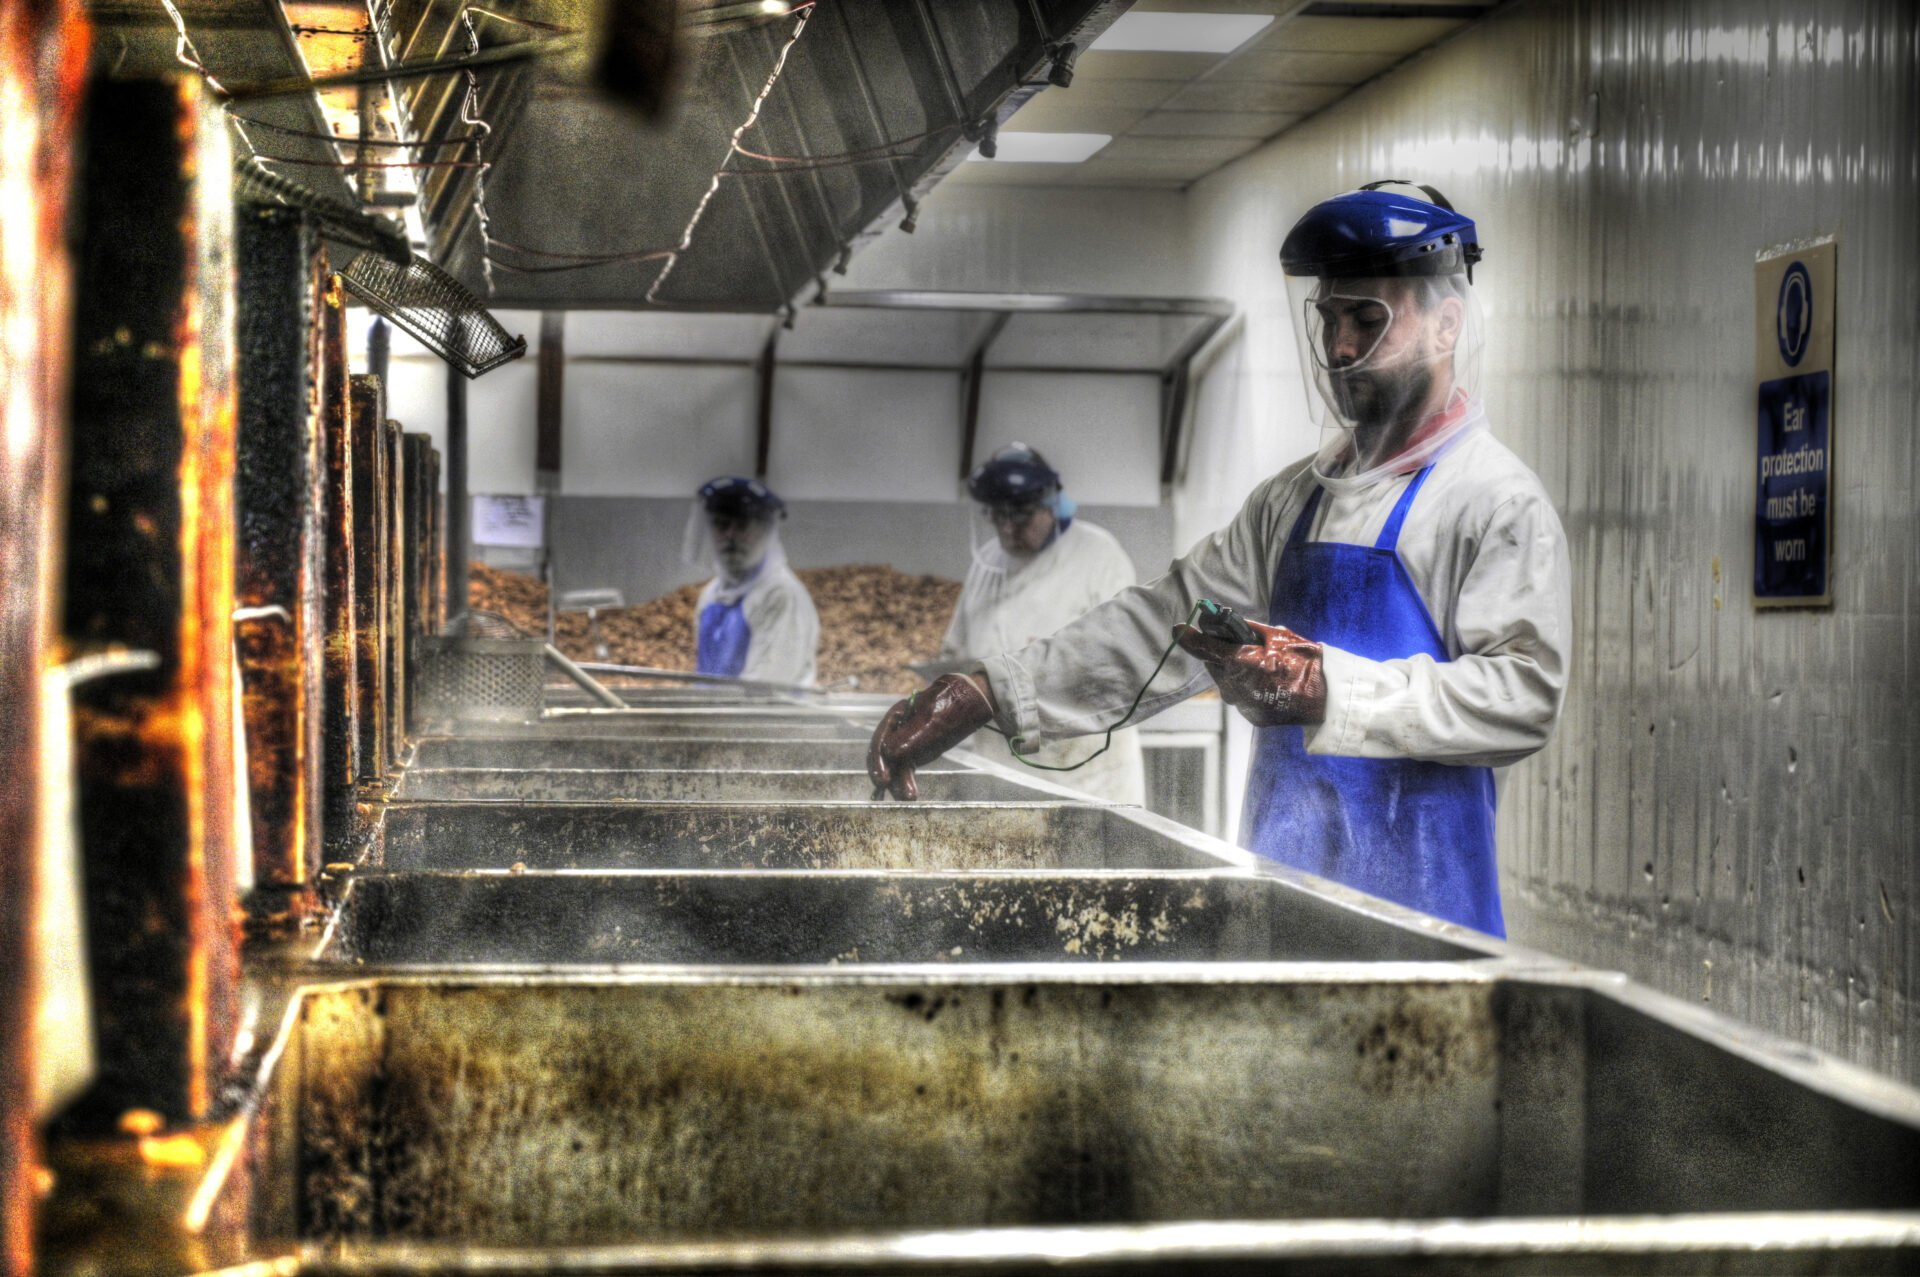 Location-photography-pork scratchings-Birmingham-01-industrial